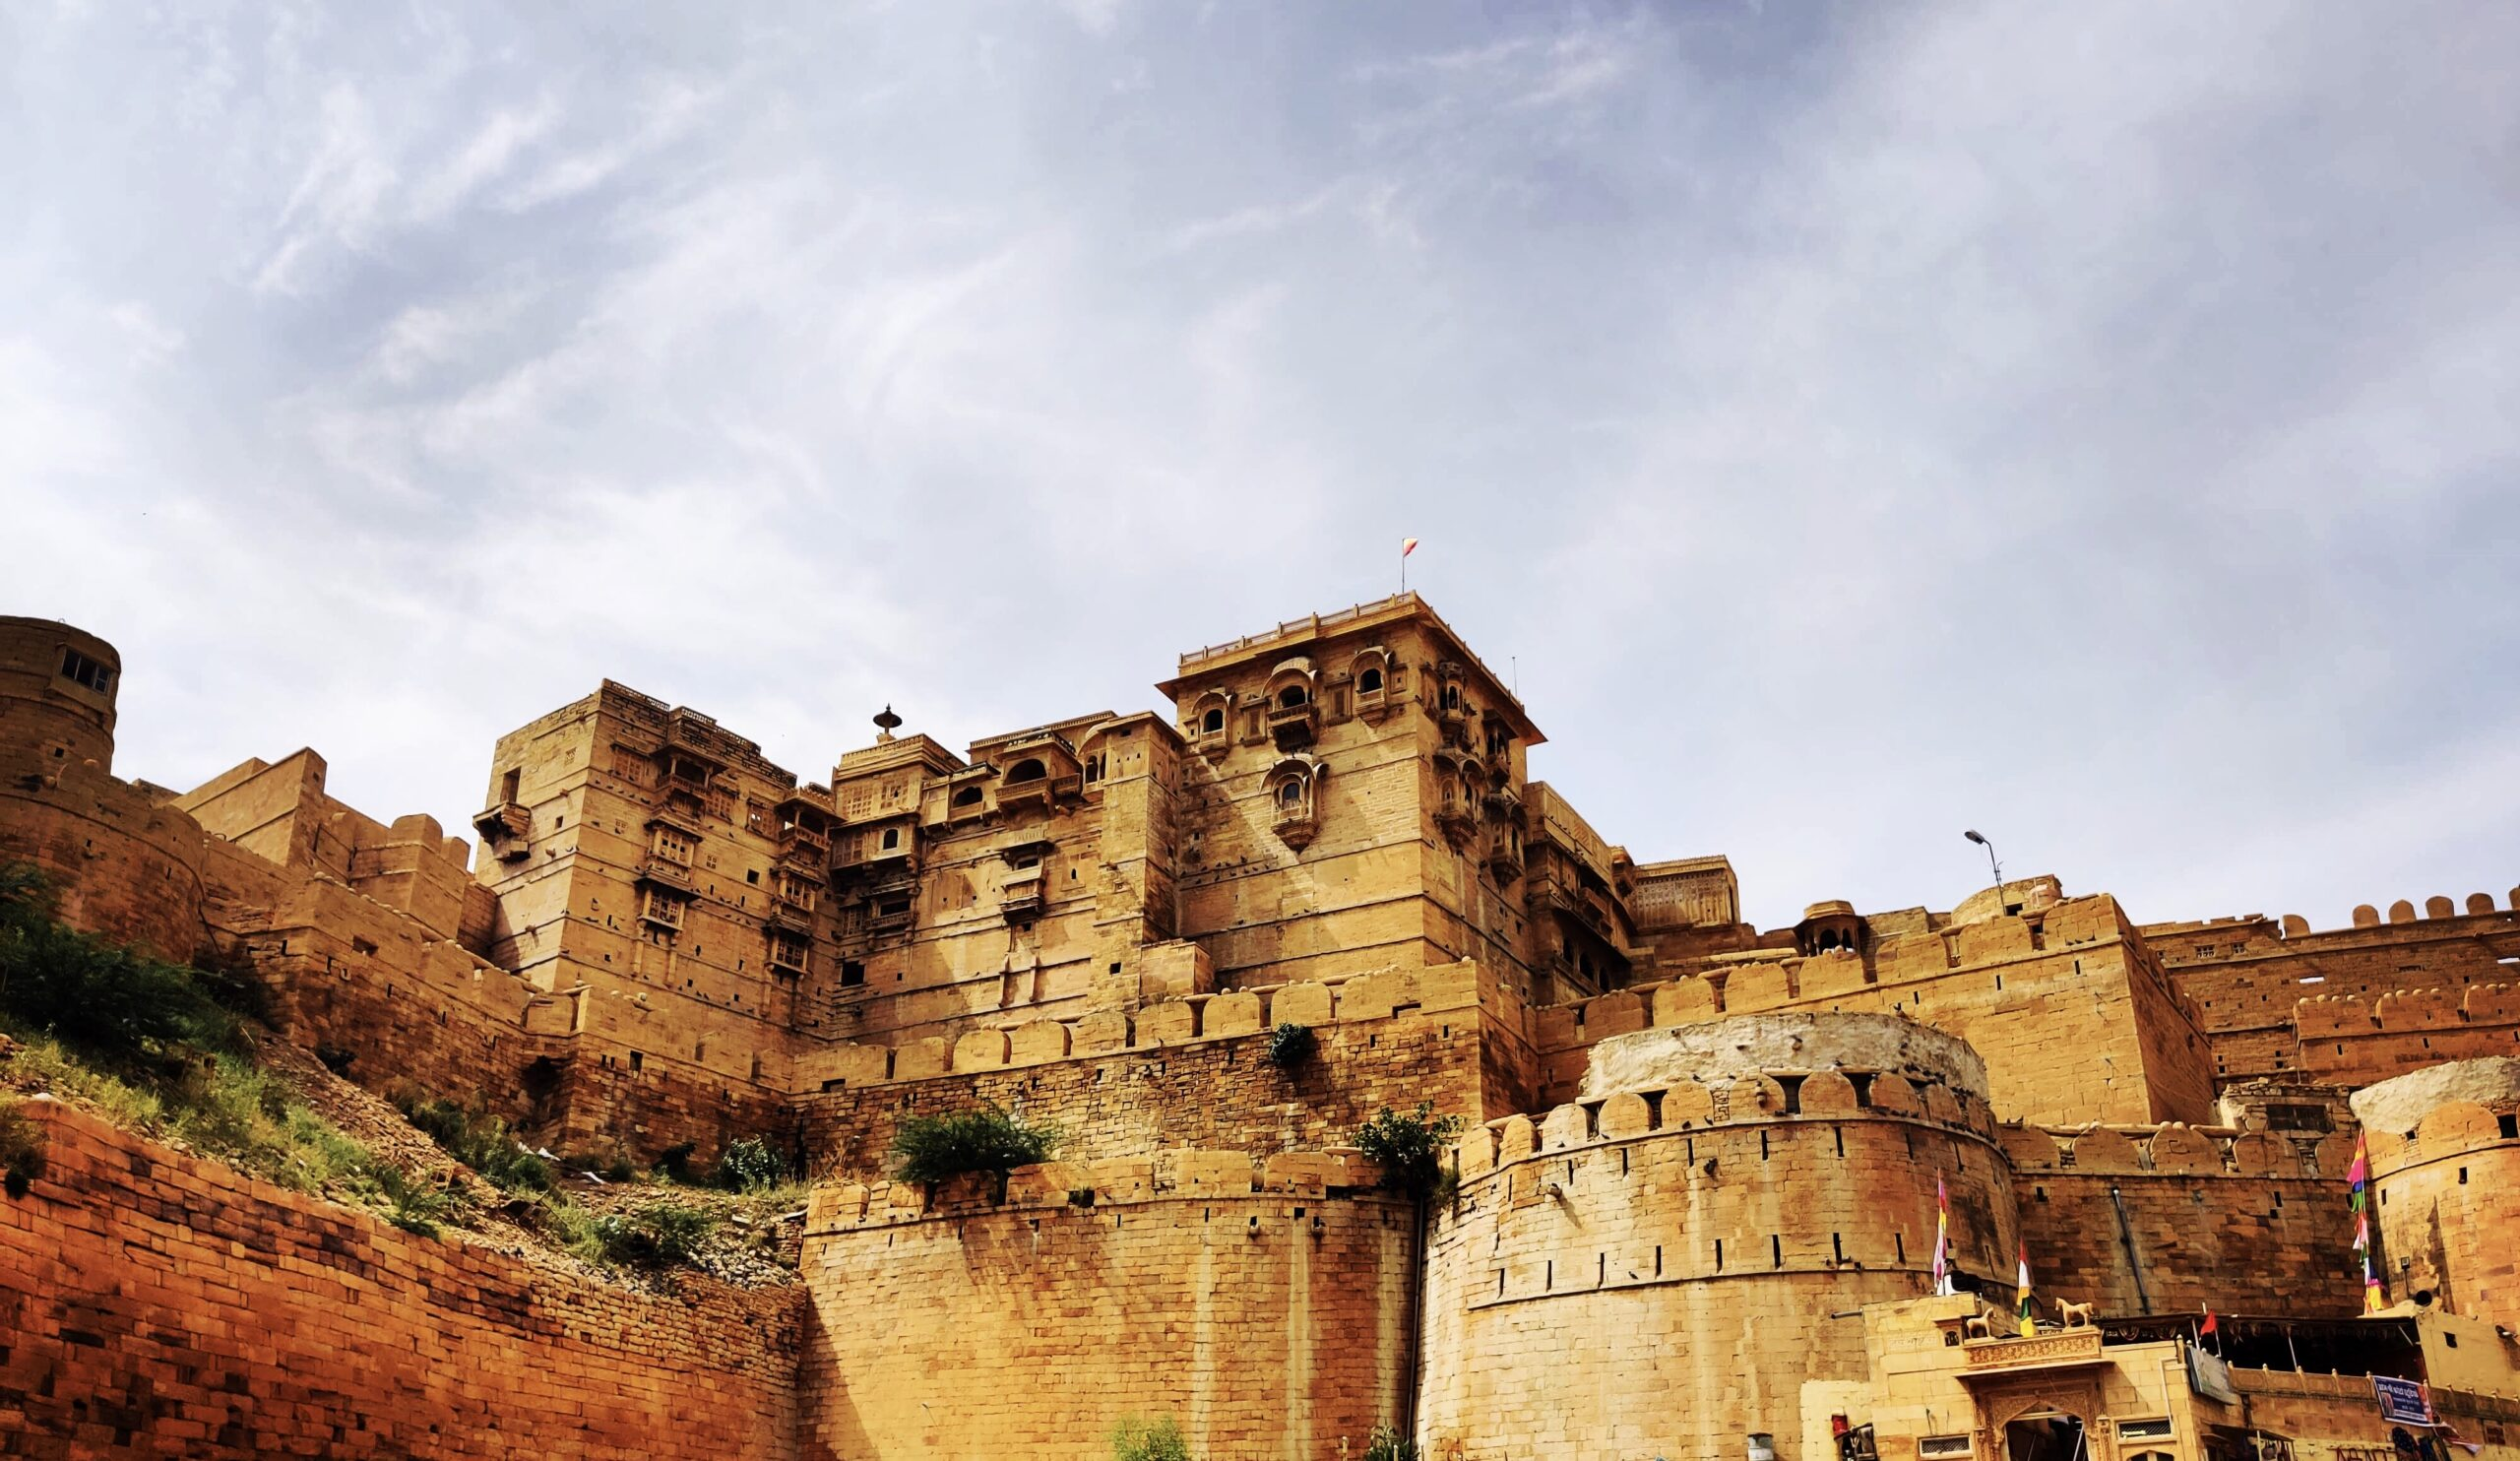 A Tour to Jaisalmer – The Golden City of Rajasthan